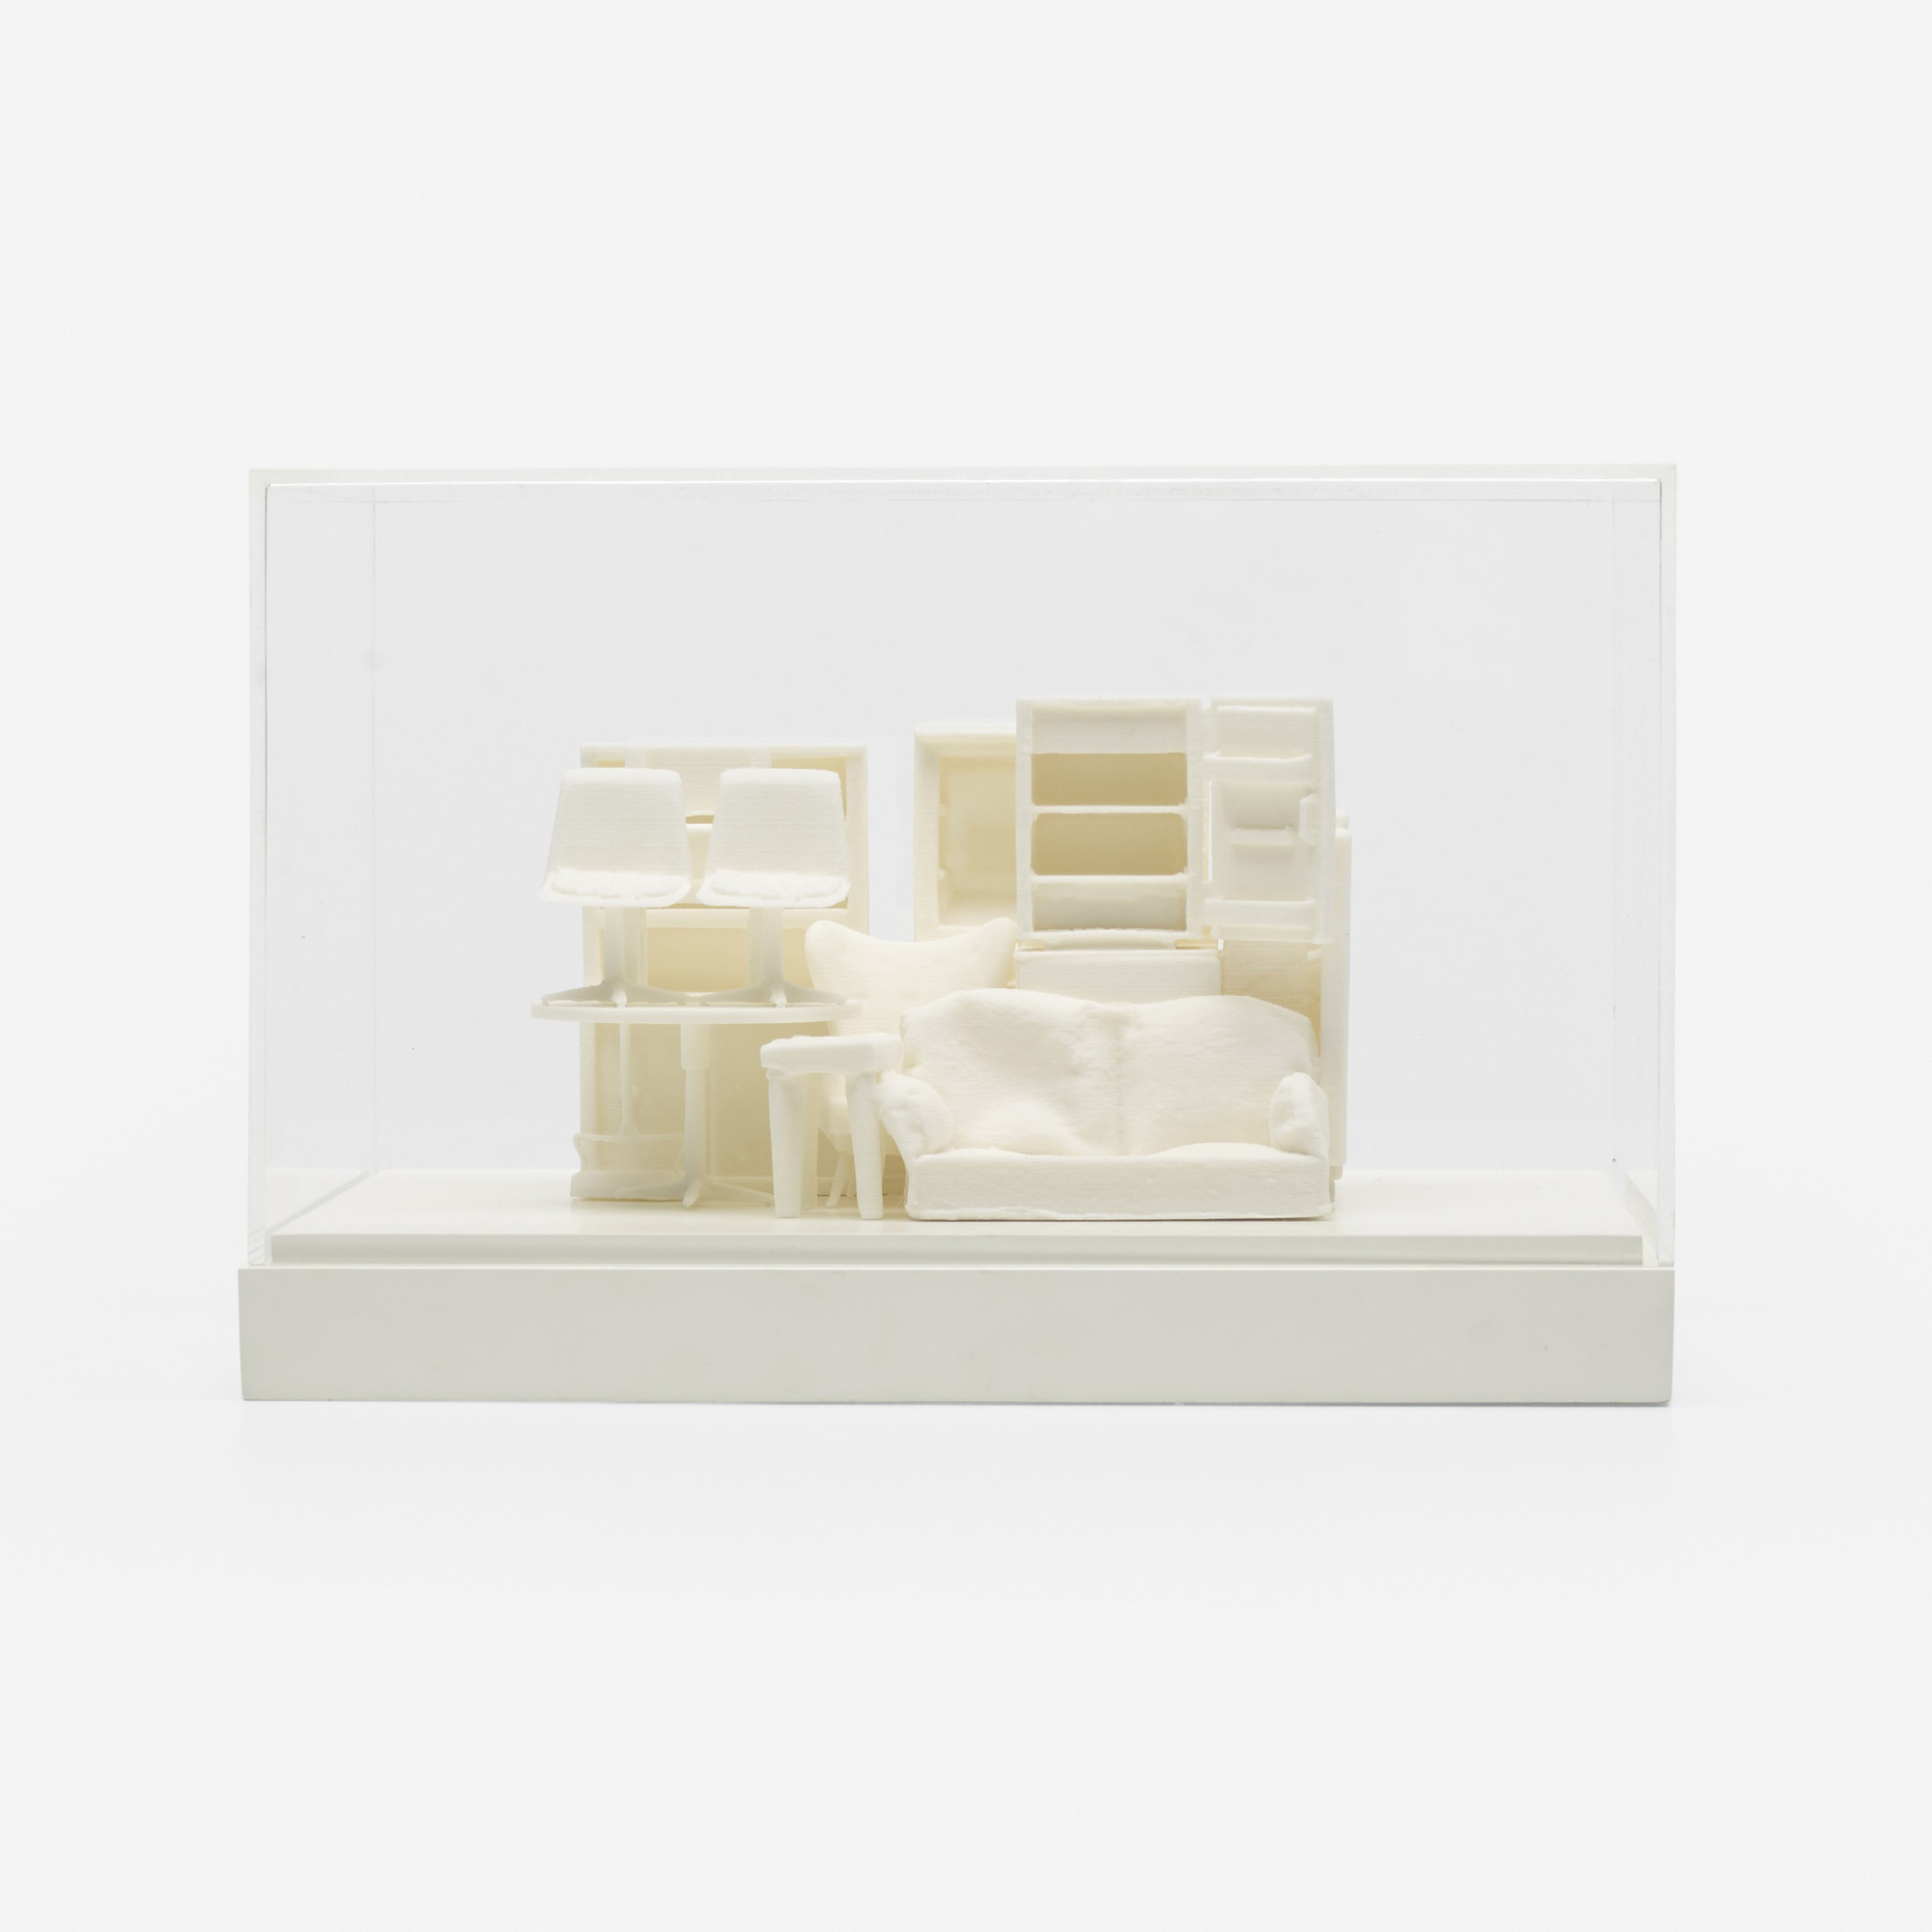 138: Rachel Whiteread / Secondhand (2 of 3)